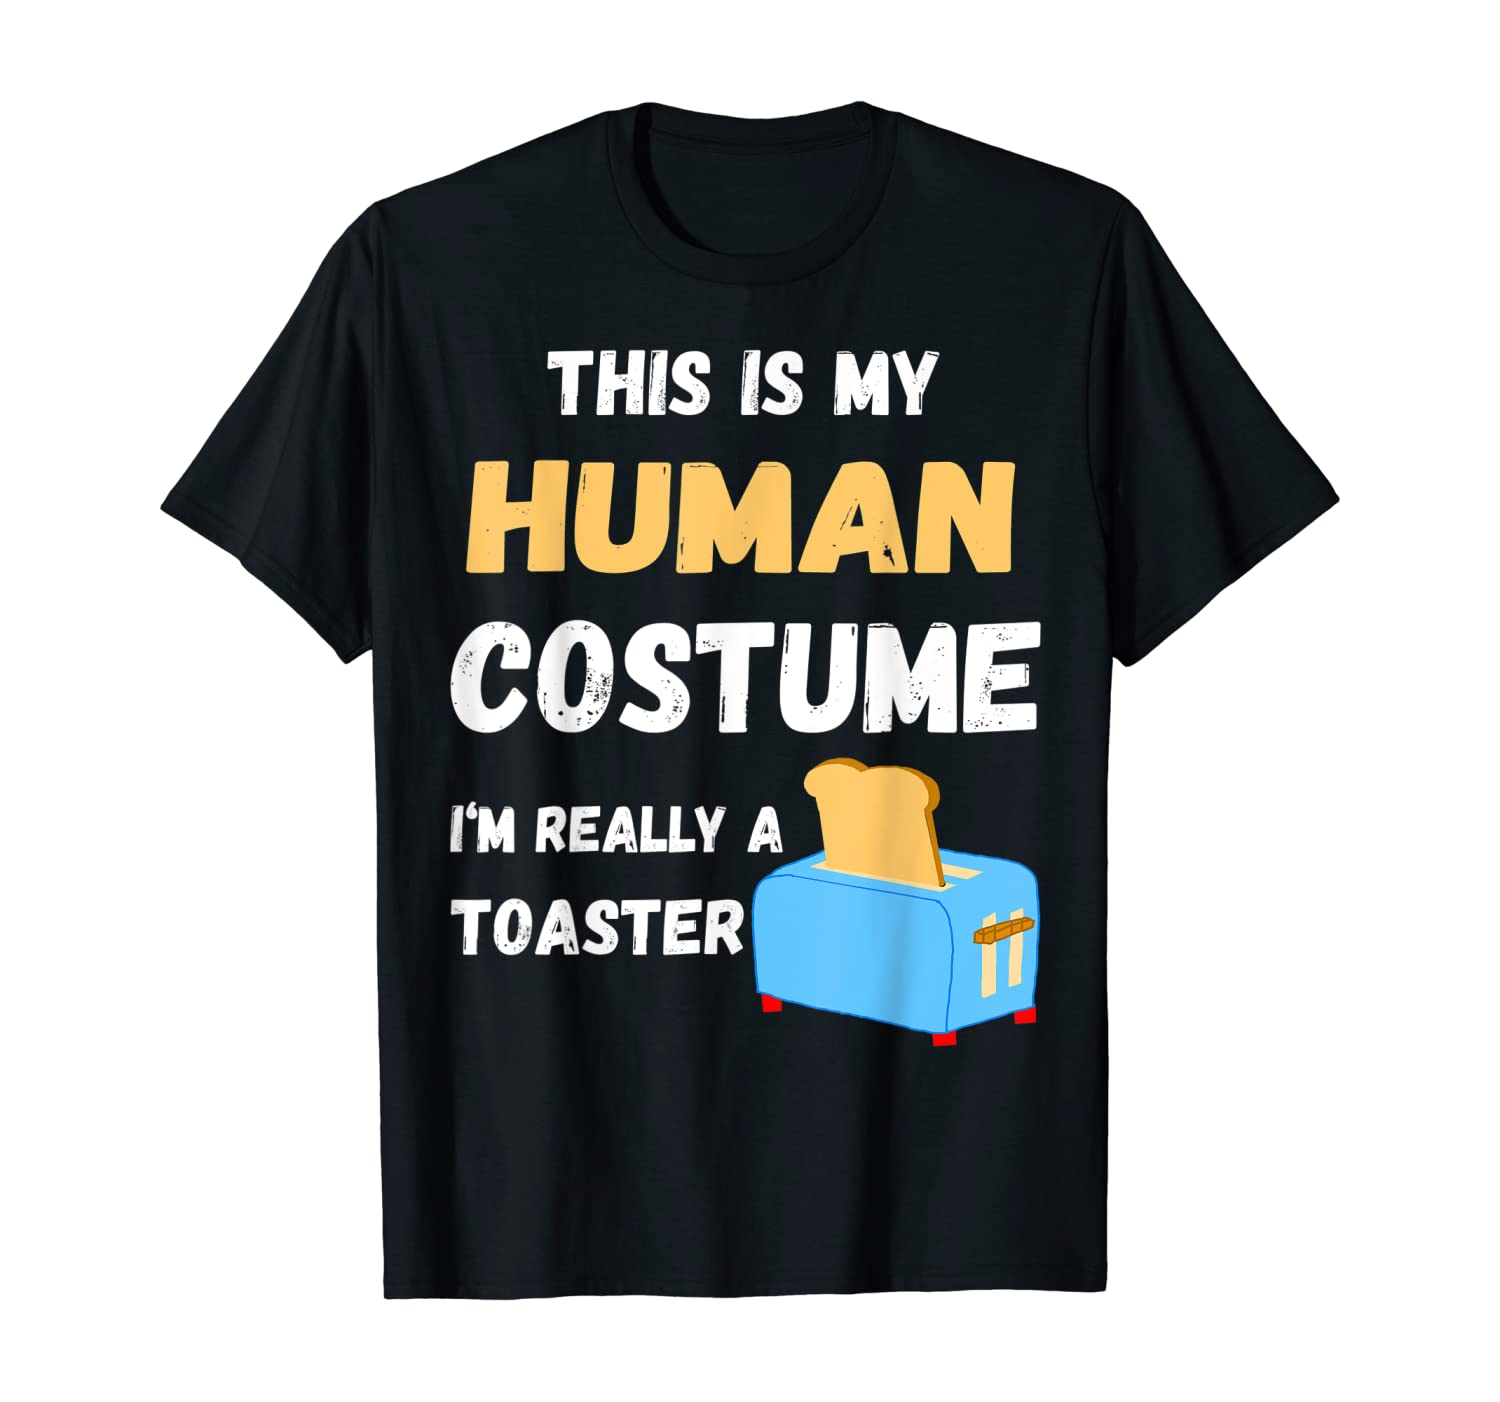 This Is My Human Costume I'm Really A Toaster Toast T-Shirt